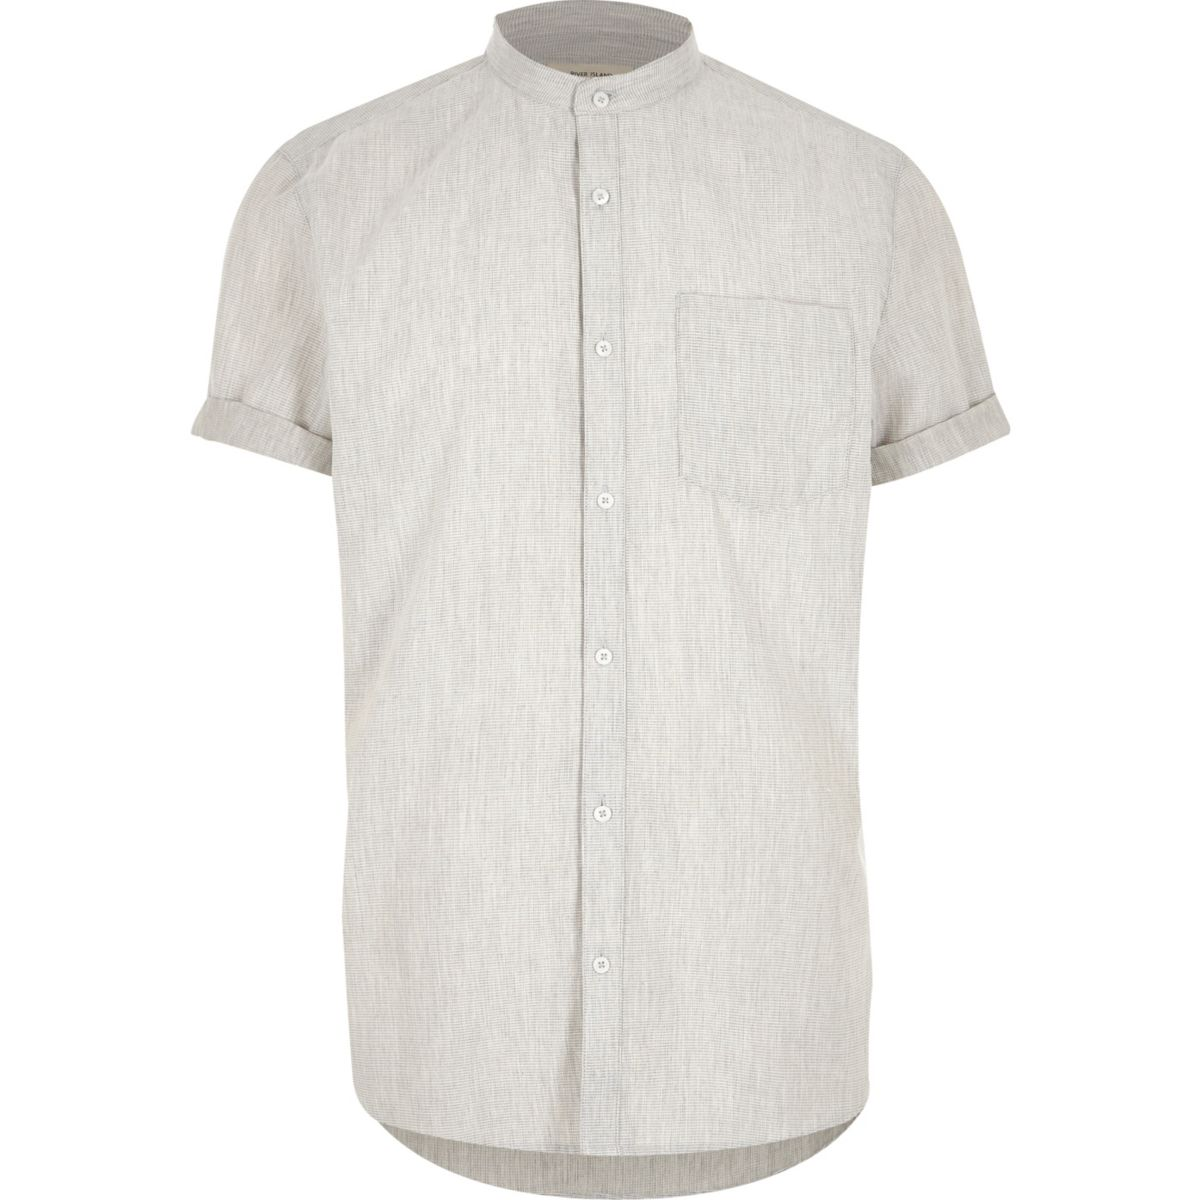 Grey waffle short sleeve grandad shirt shirts sale men for Short sleeve grandad shirt